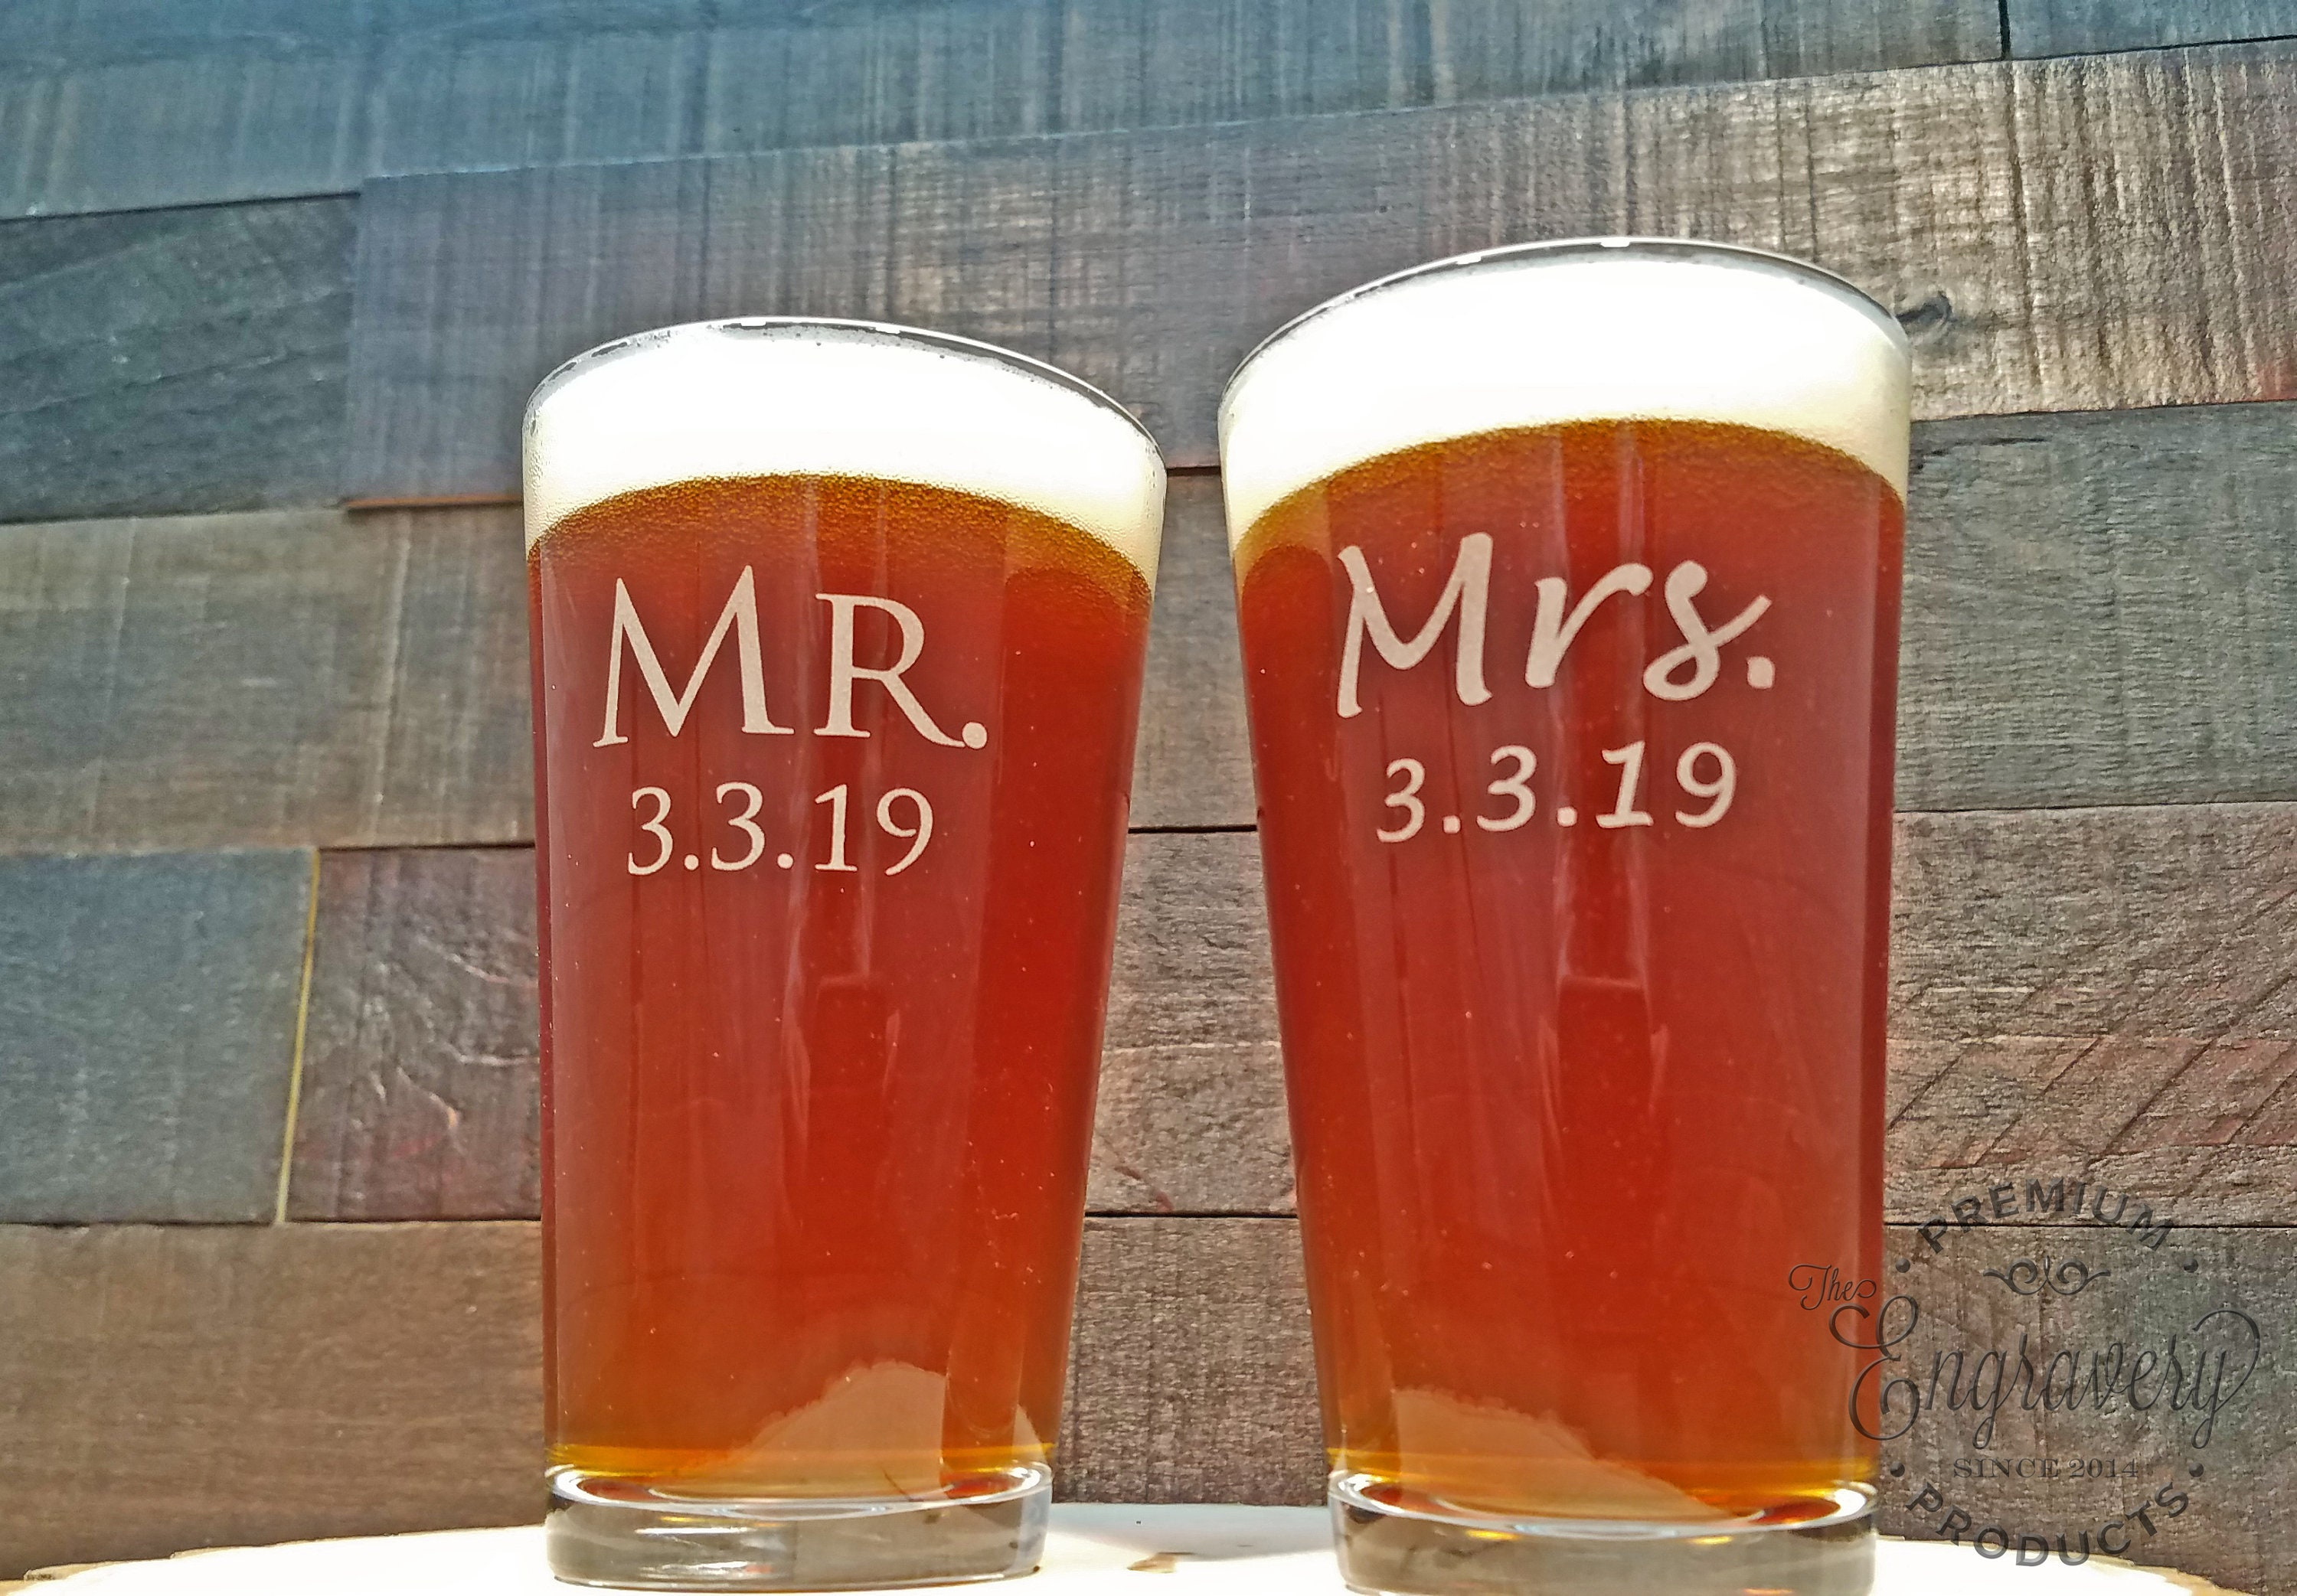 Mr. and Mrs. Beer Glasses, Custom Engraved with Date, Personalized Beer Glass, Wedding Gift, Beer Gift, Choose Two Custom Fonts - Set of 2